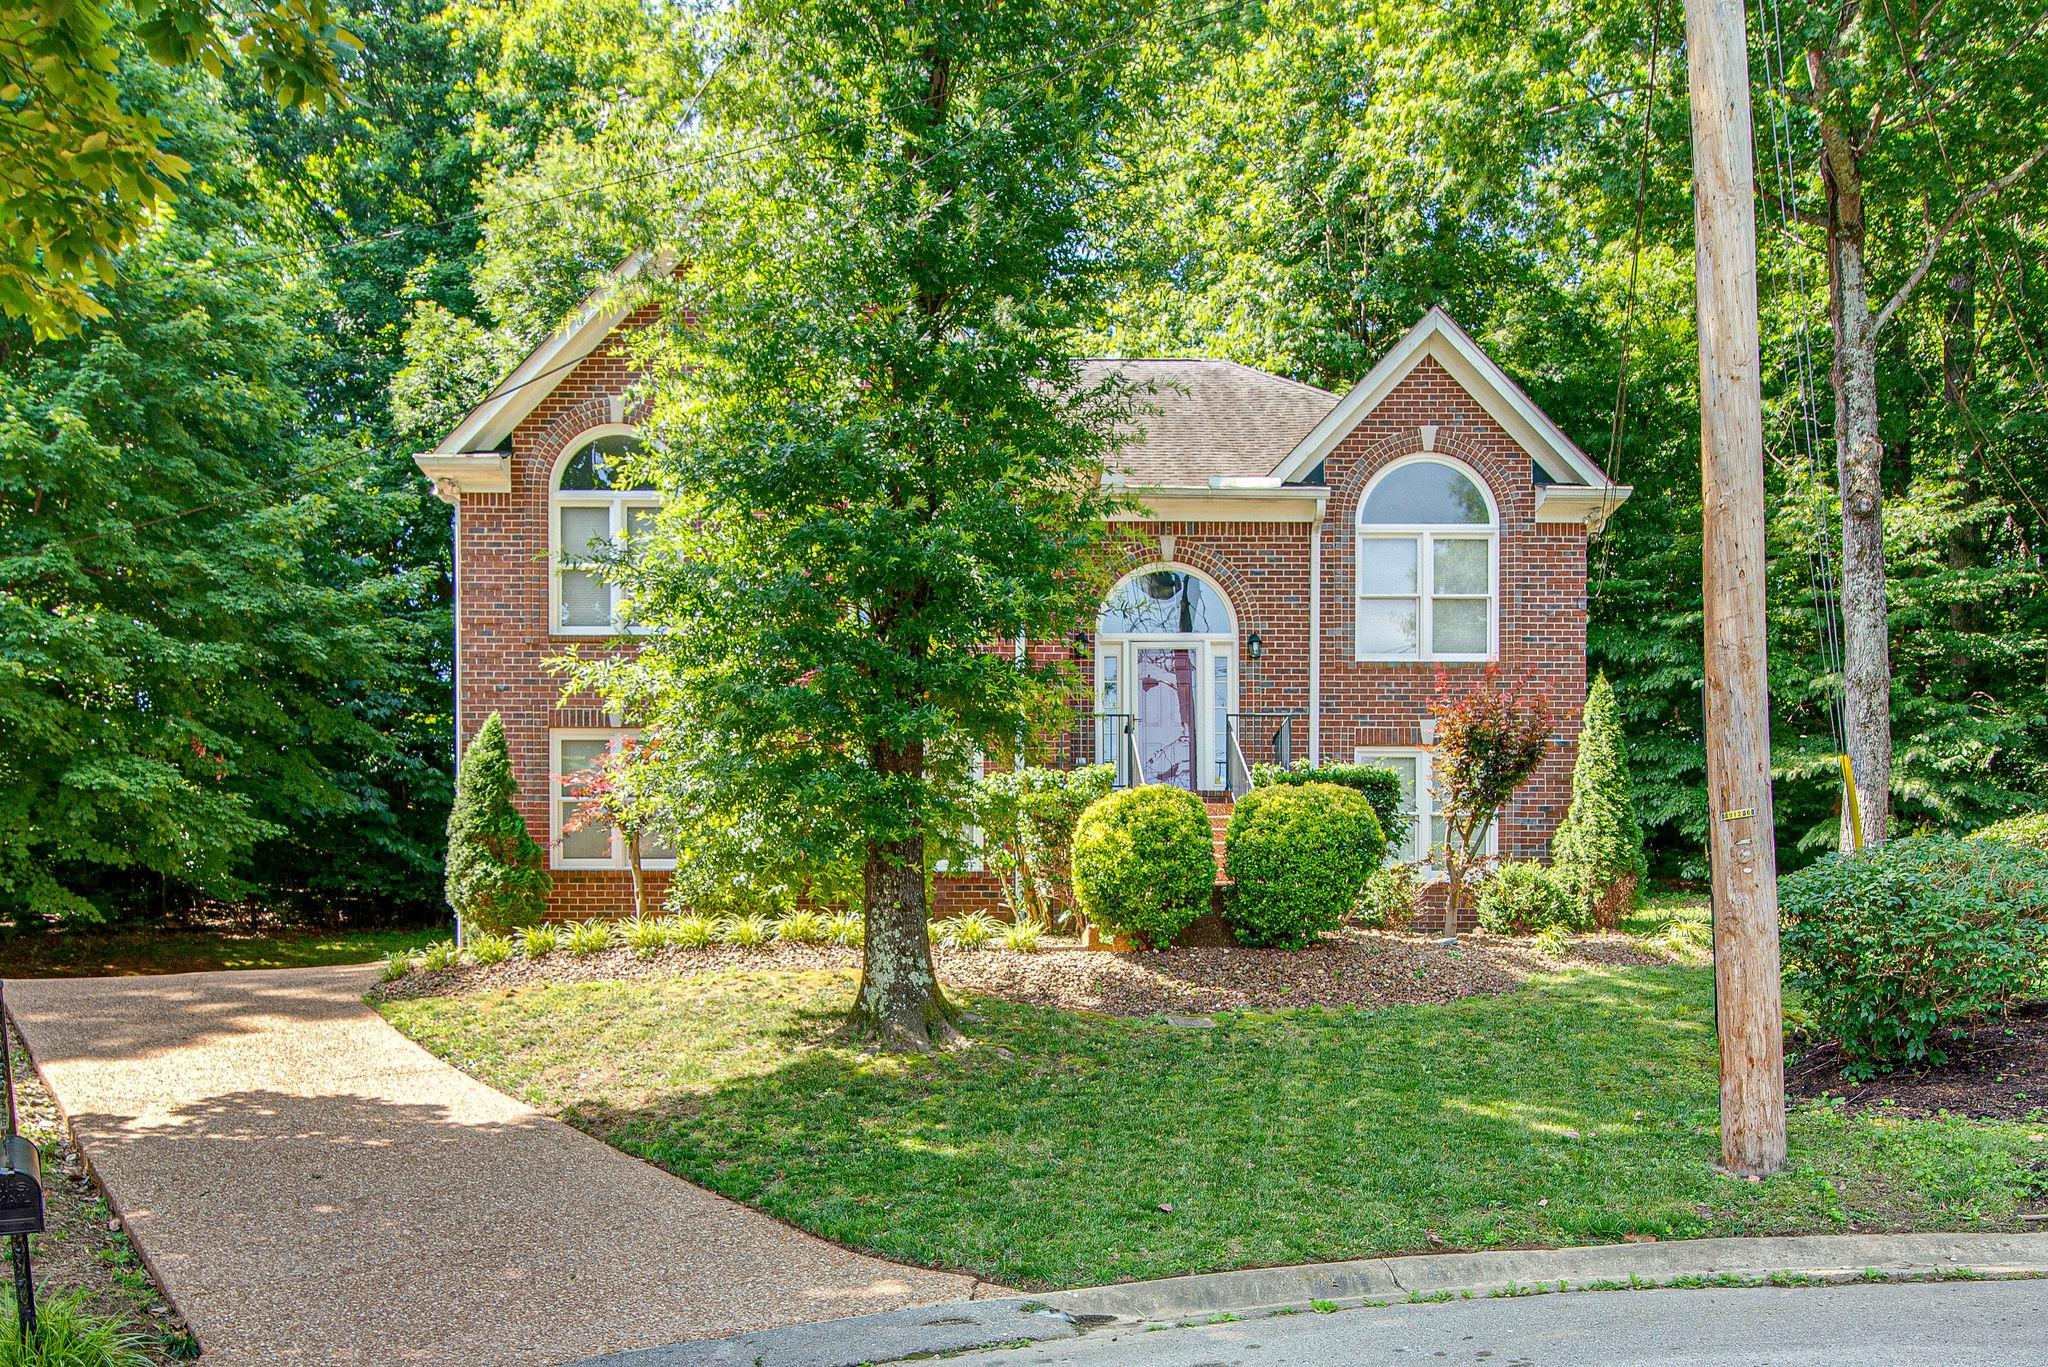 409 SUNSET COURT, Hermitage, TN 37076 - Hermitage, TN real estate listing